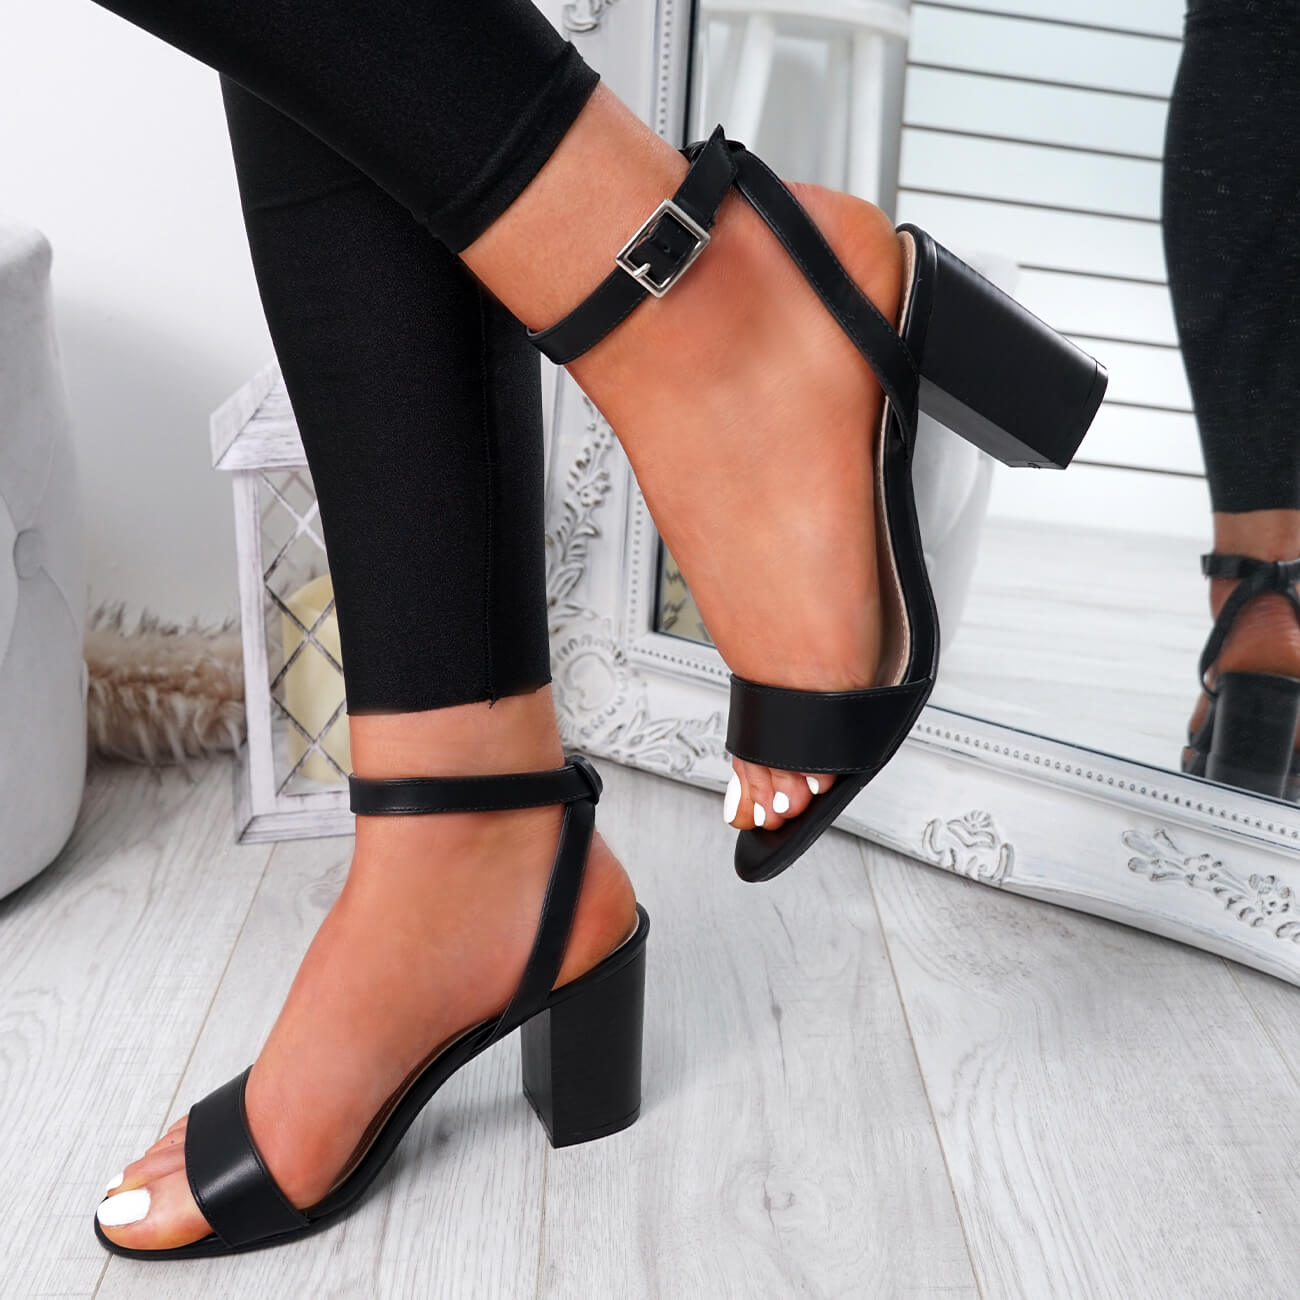 WOMENS-LADIES-PEEP-TOE-HIGH-BLOCK-HEEL-SANDALS-ANKLE-STRAP-PARTY-SHOES-SIZE thumbnail 10